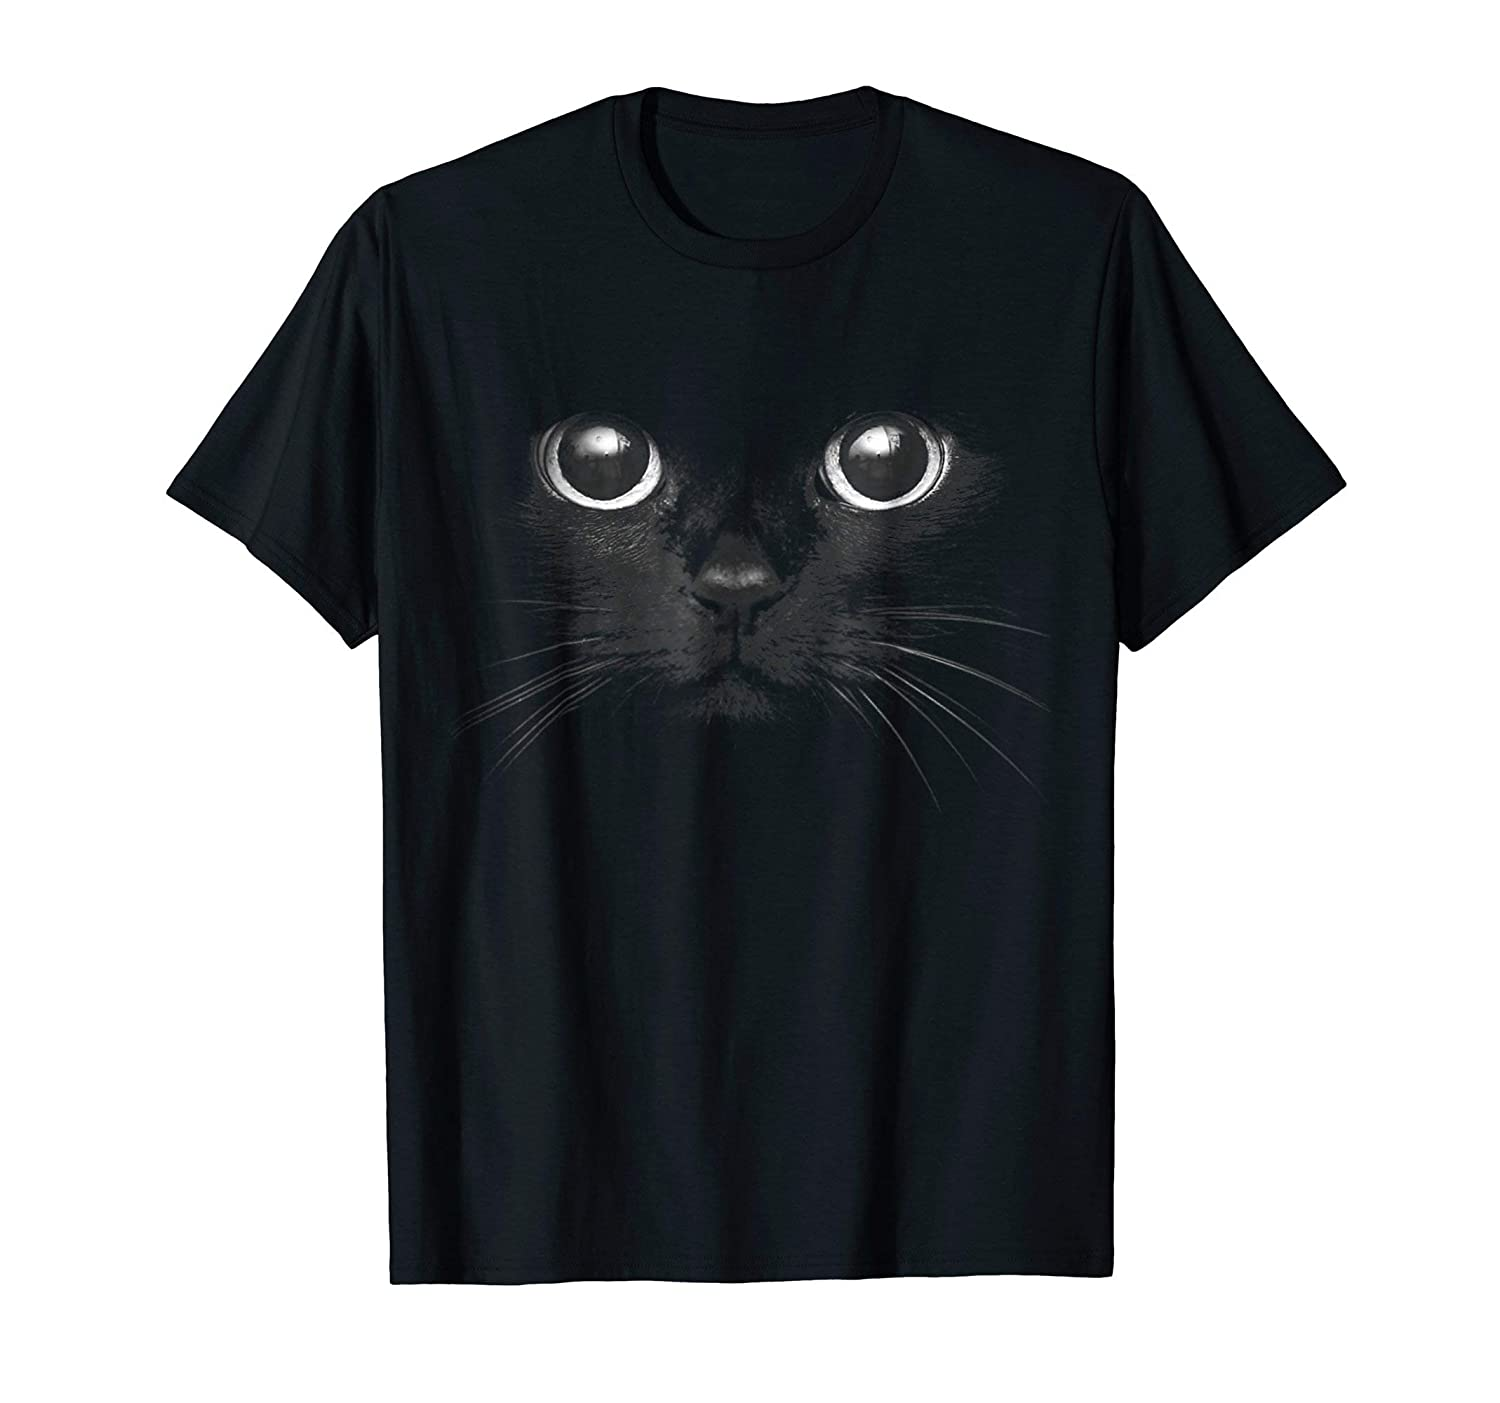 3D Black Cat Face Graphic T-Shirt Halloween Gift Cat Lovers-Rose